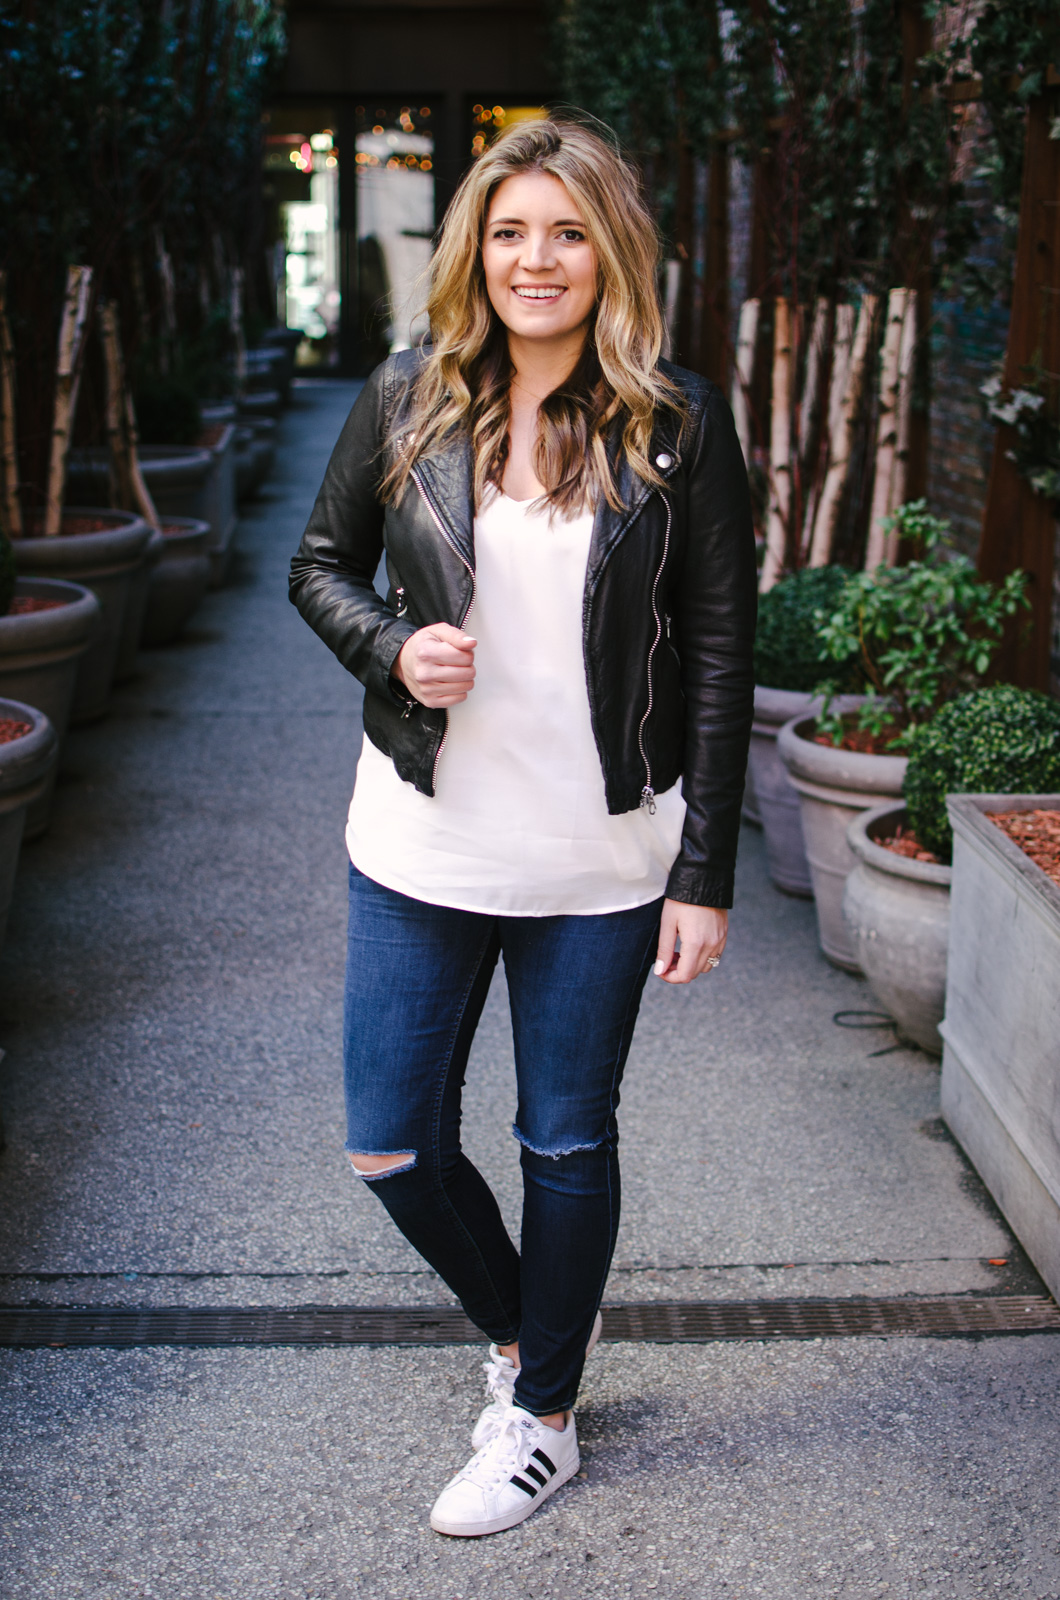 leather jacket with a cami spring outfit idea | bylaurenm.com